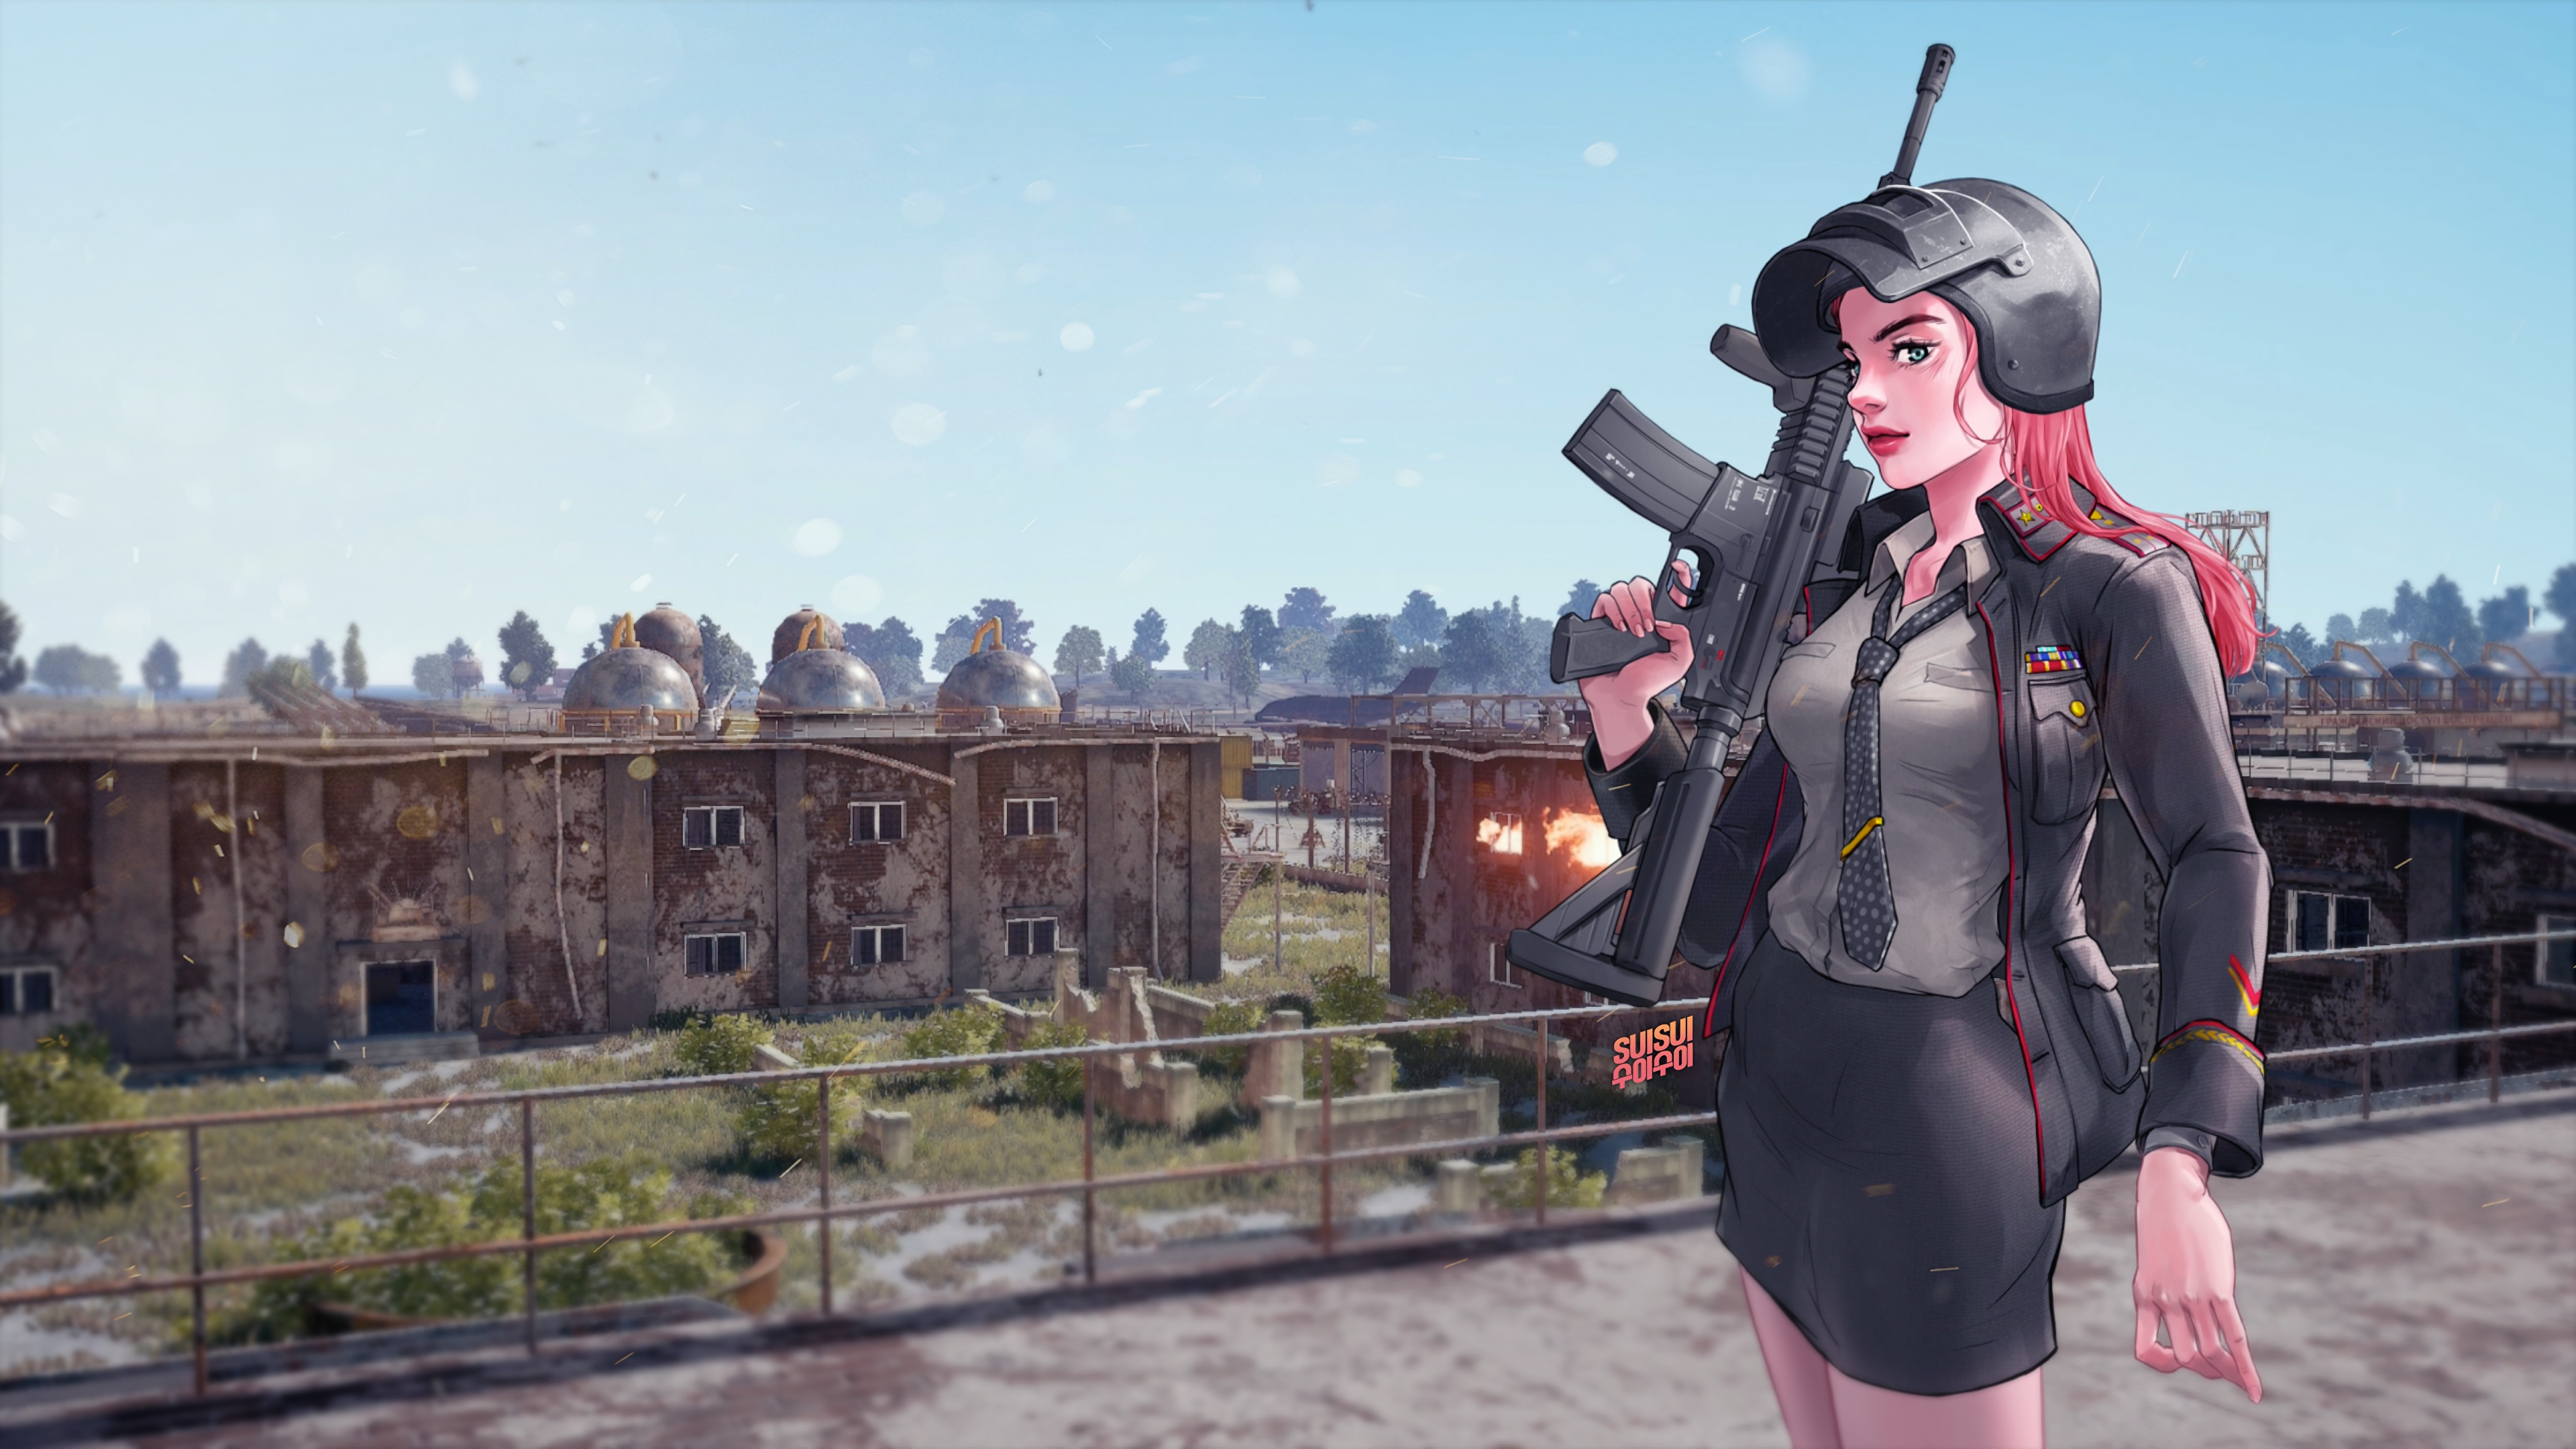 Hd Wallpapers Pubg Playerunknown S Battlegrounds Pubg 4k 8k Hd